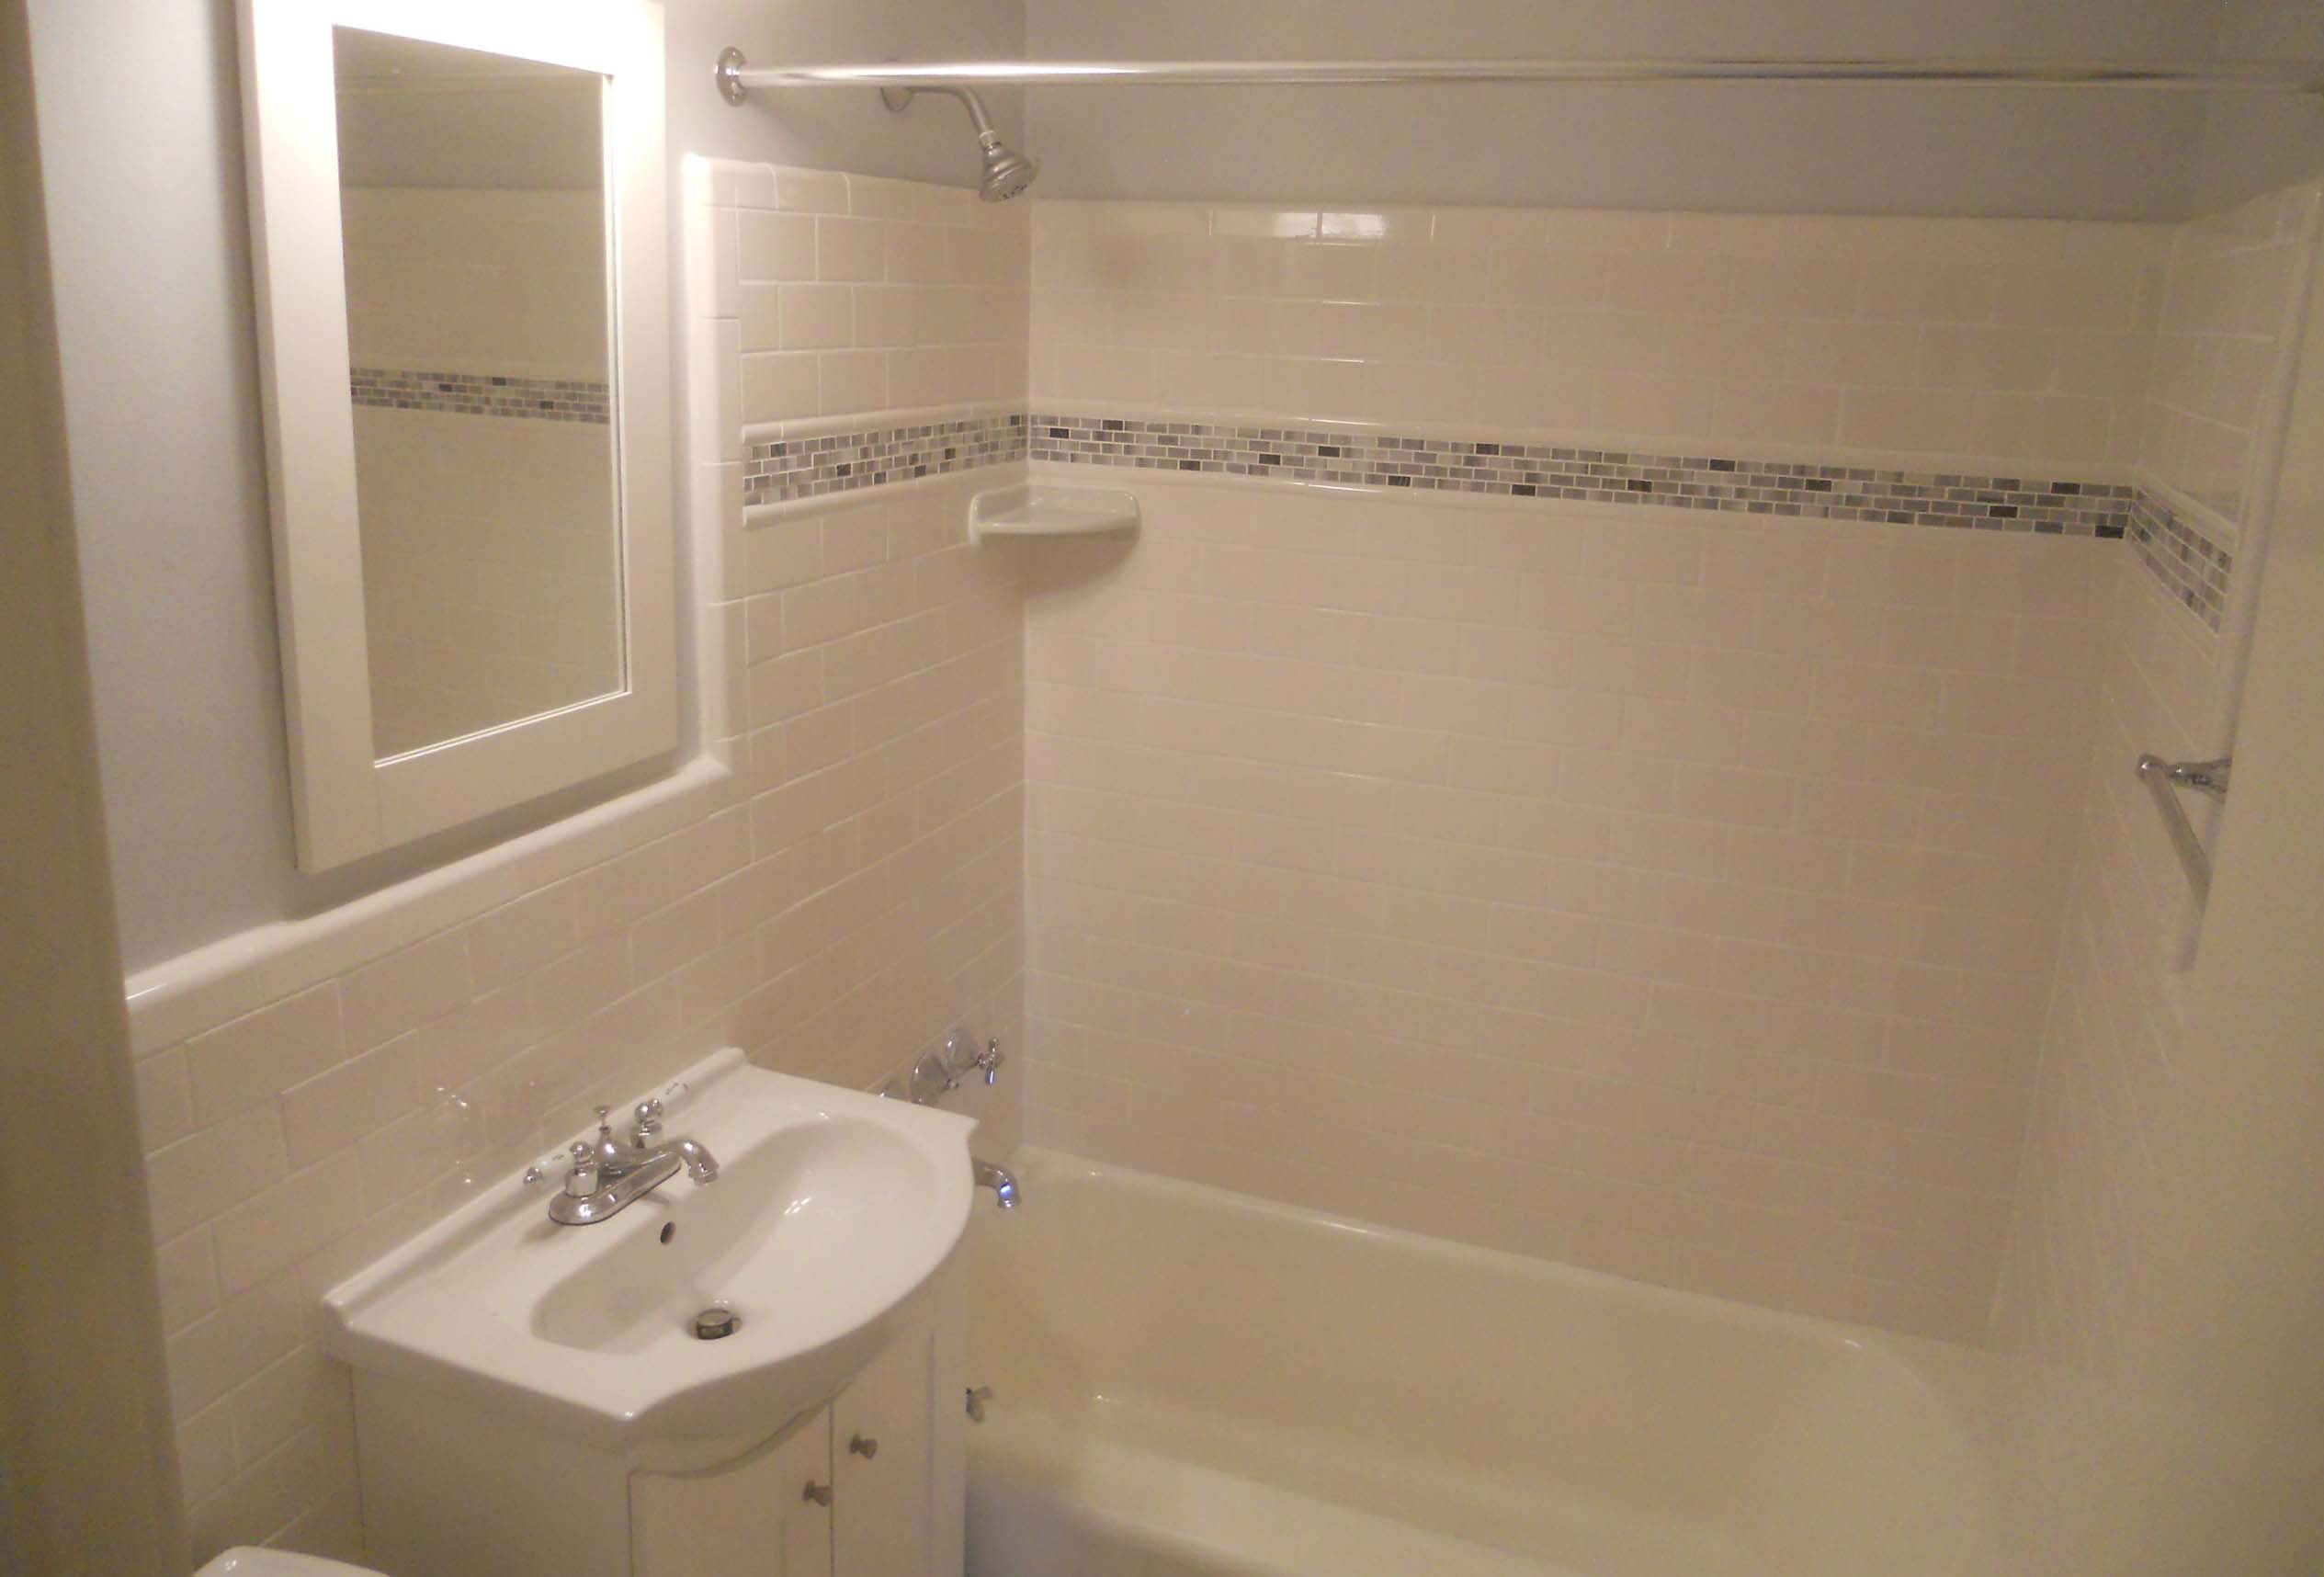 wall surround and tiled bathroom